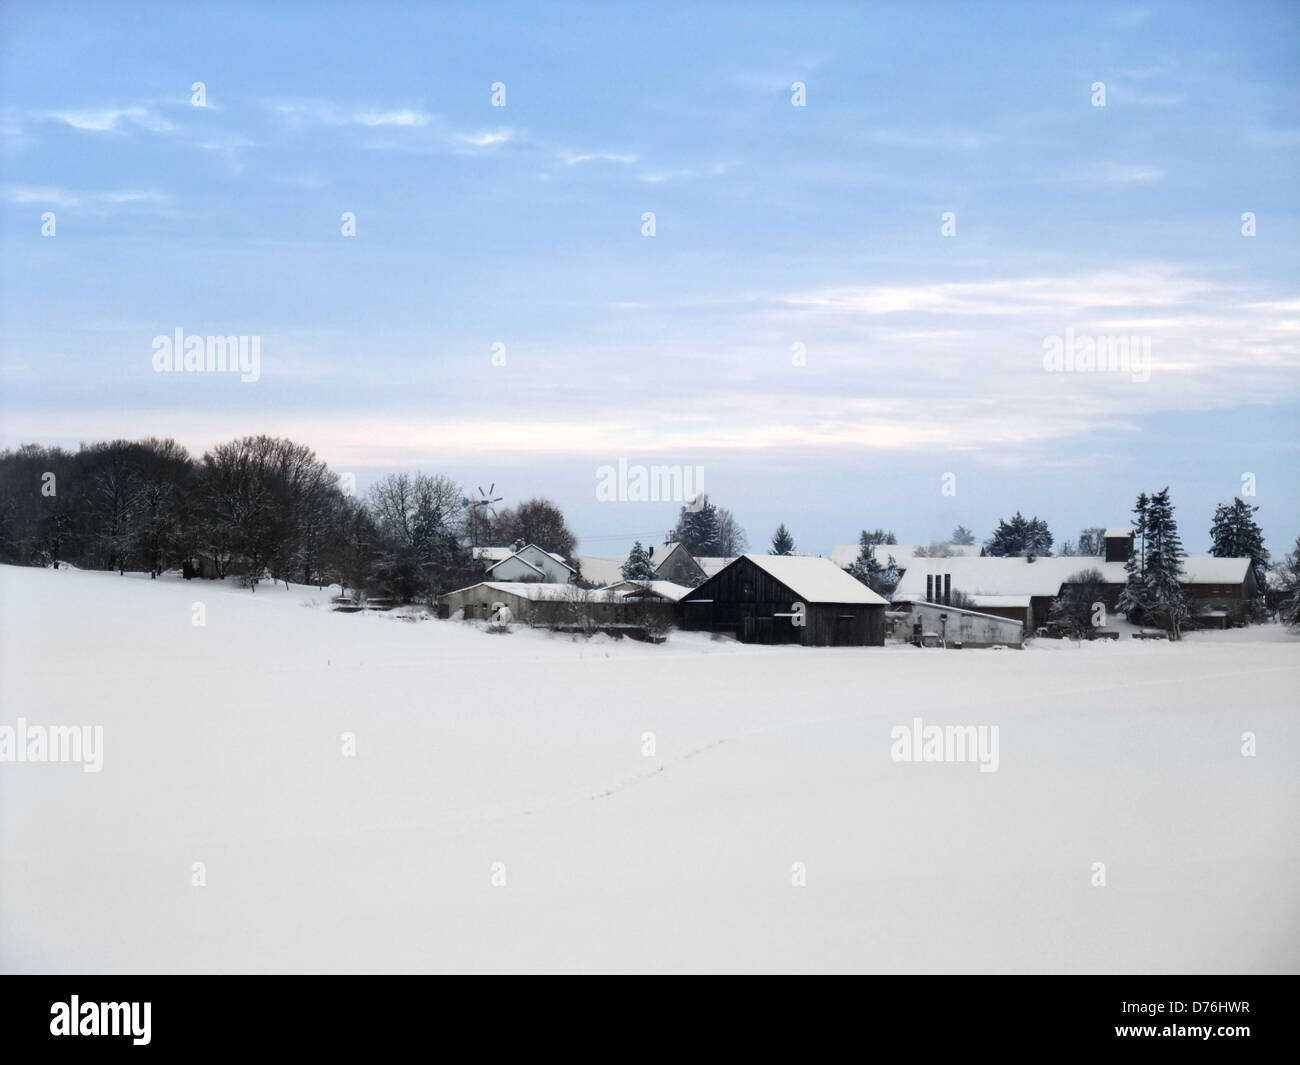 idyllic rural winter scenery with small village at evening time in Hohenlohe, an area in Southern Germany Stock Photo